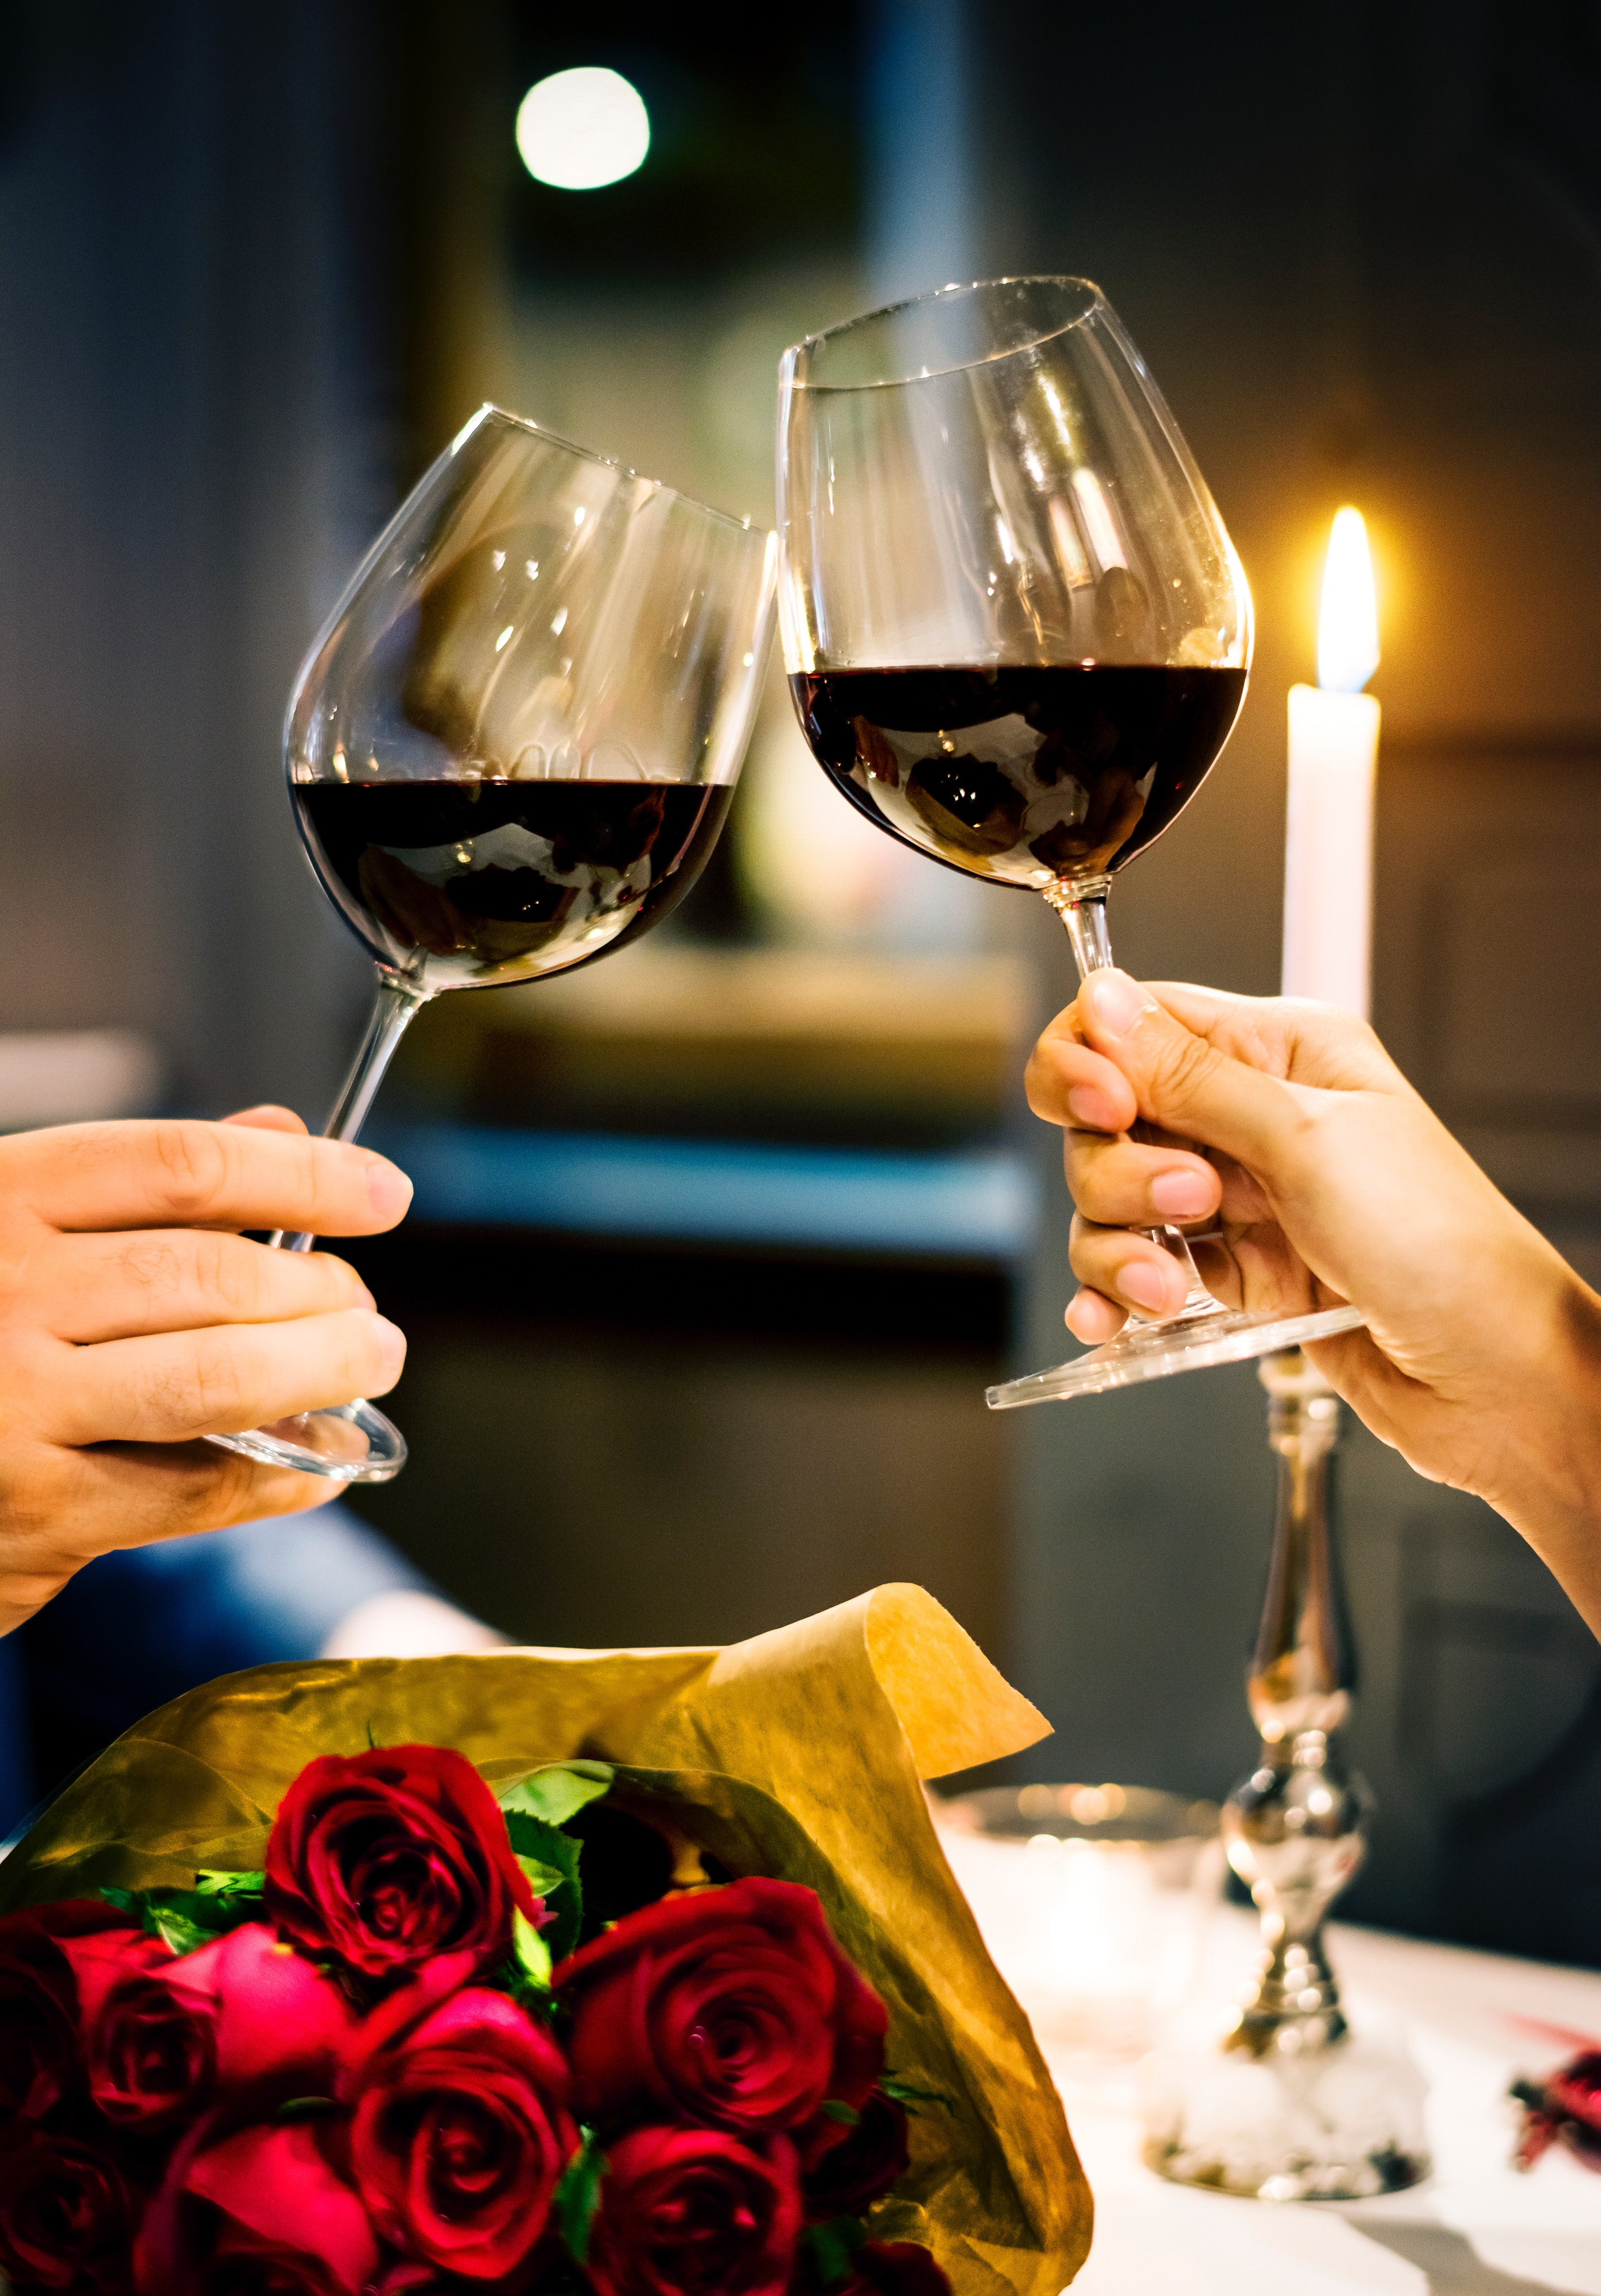 How to Keep Romance Alive During Wedding Planning